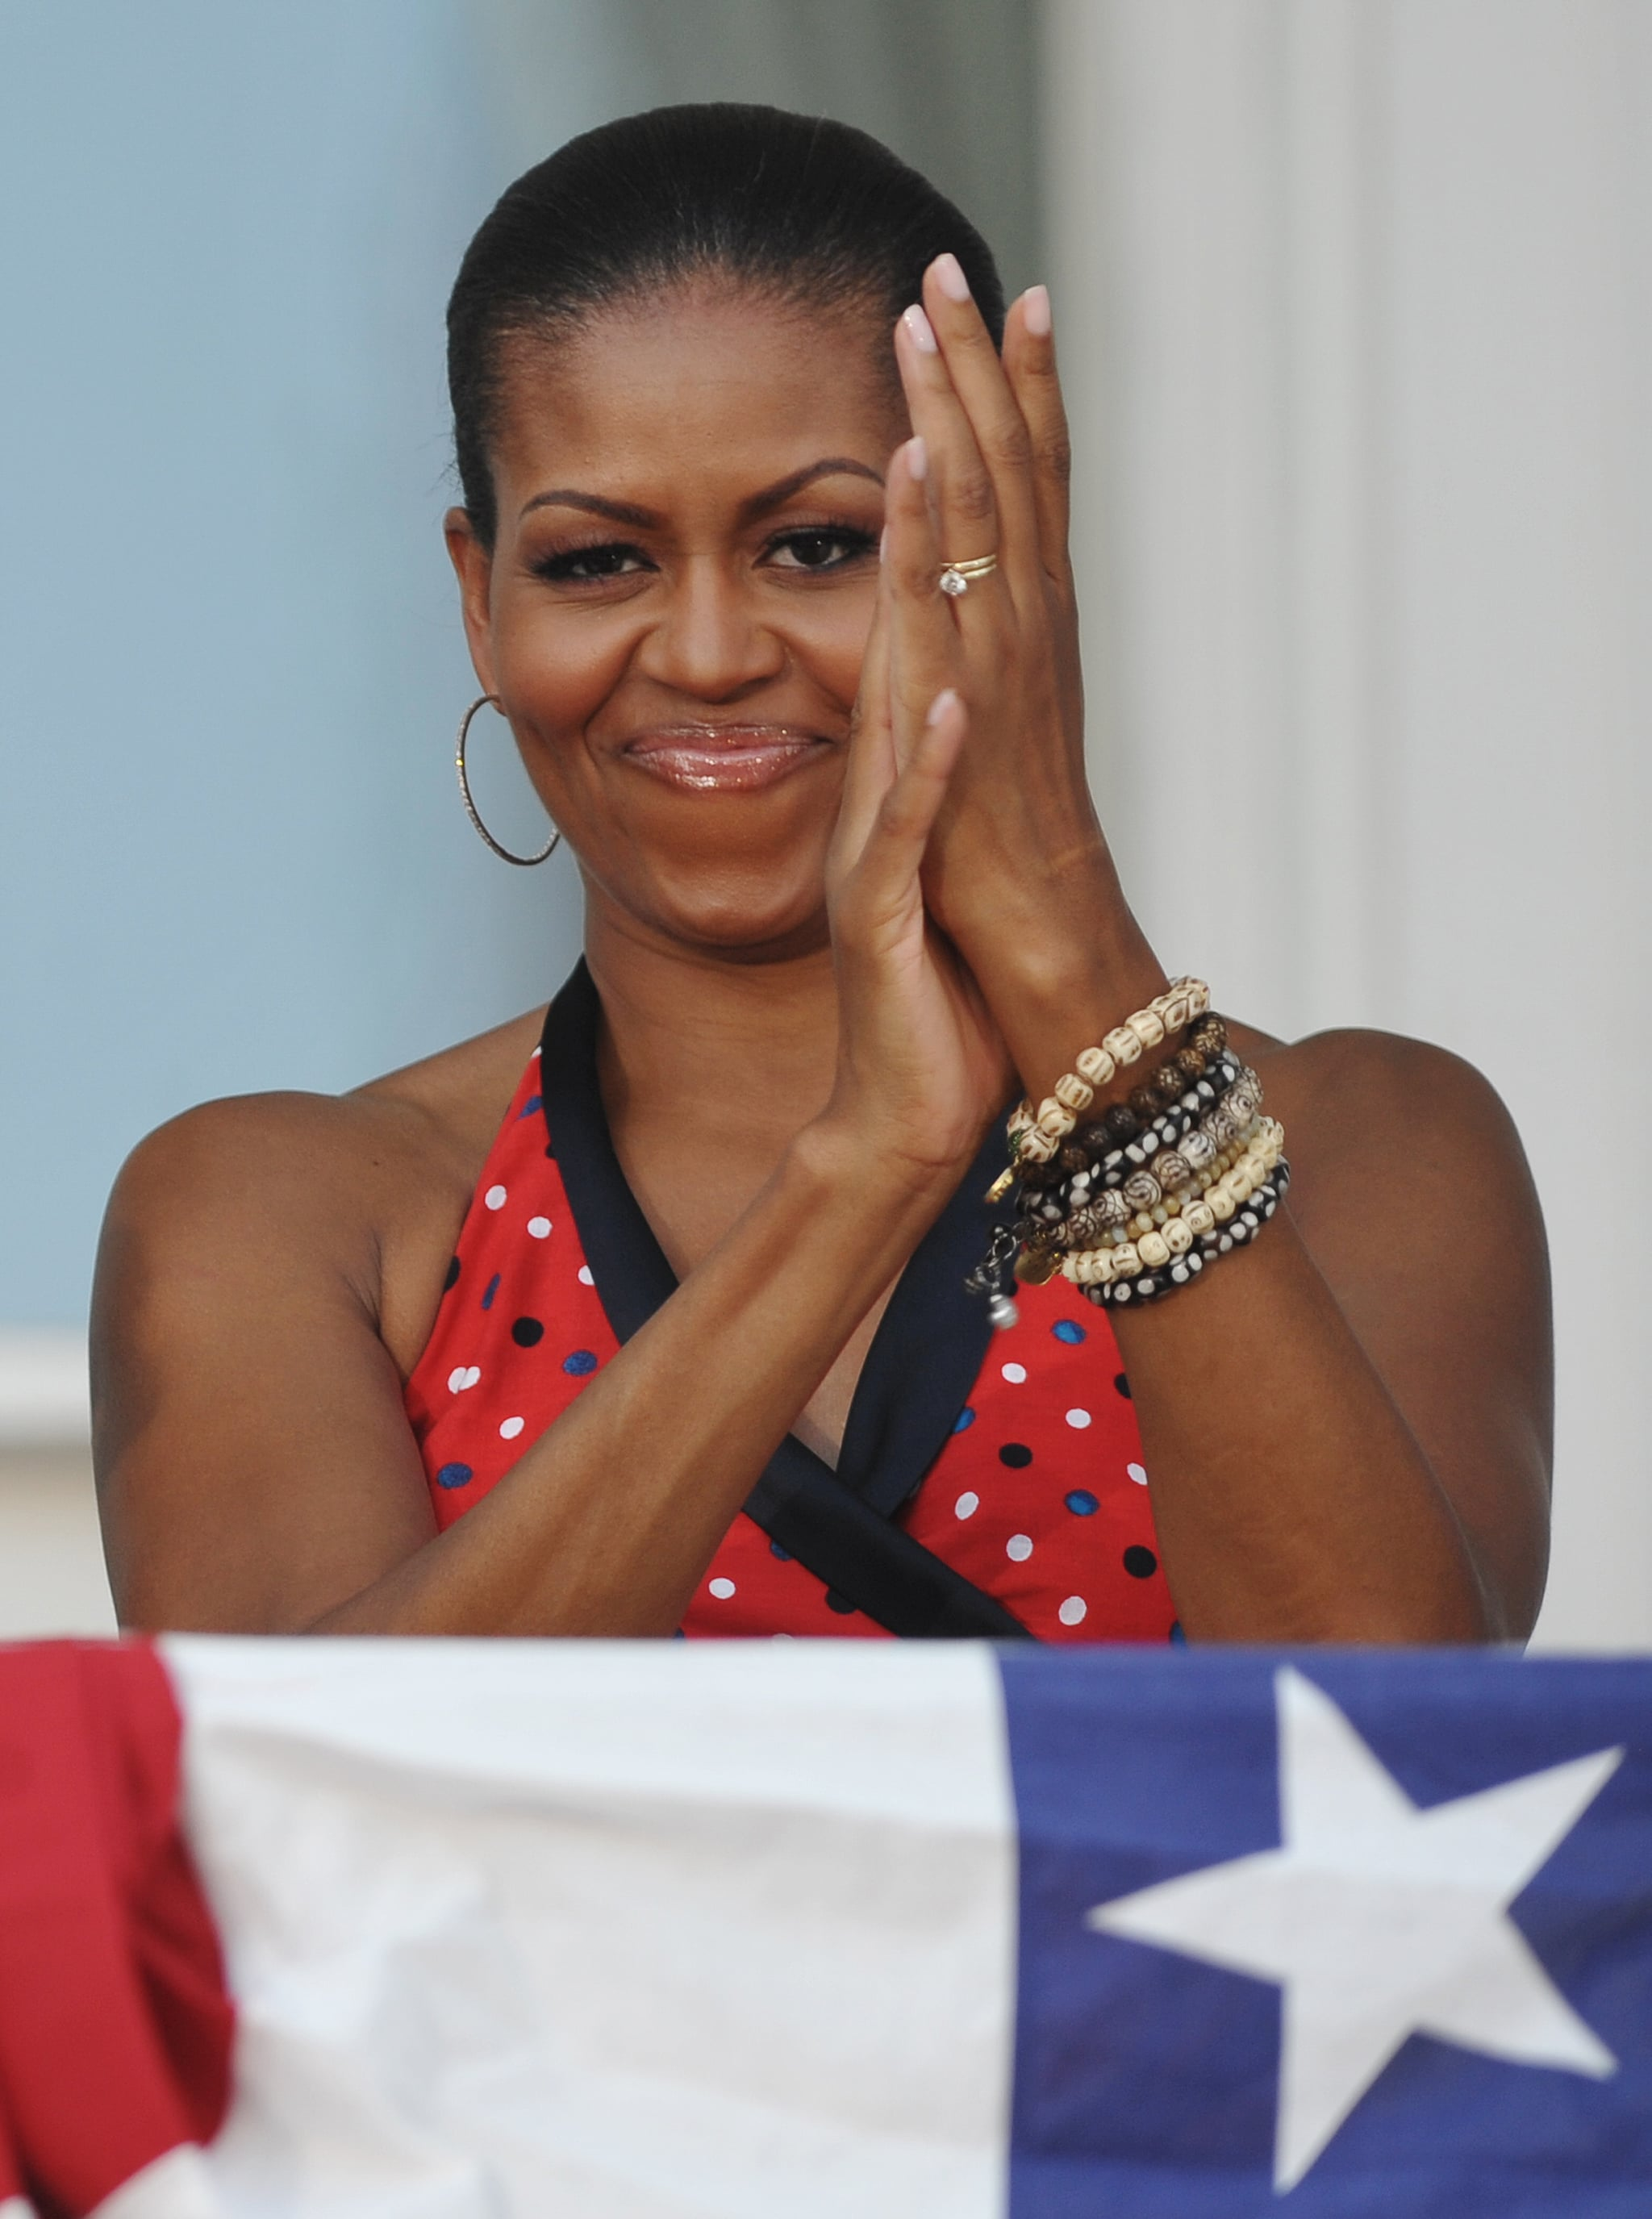 Michelle wore her red, white, and blue best for a 2010 celebration at the White House.